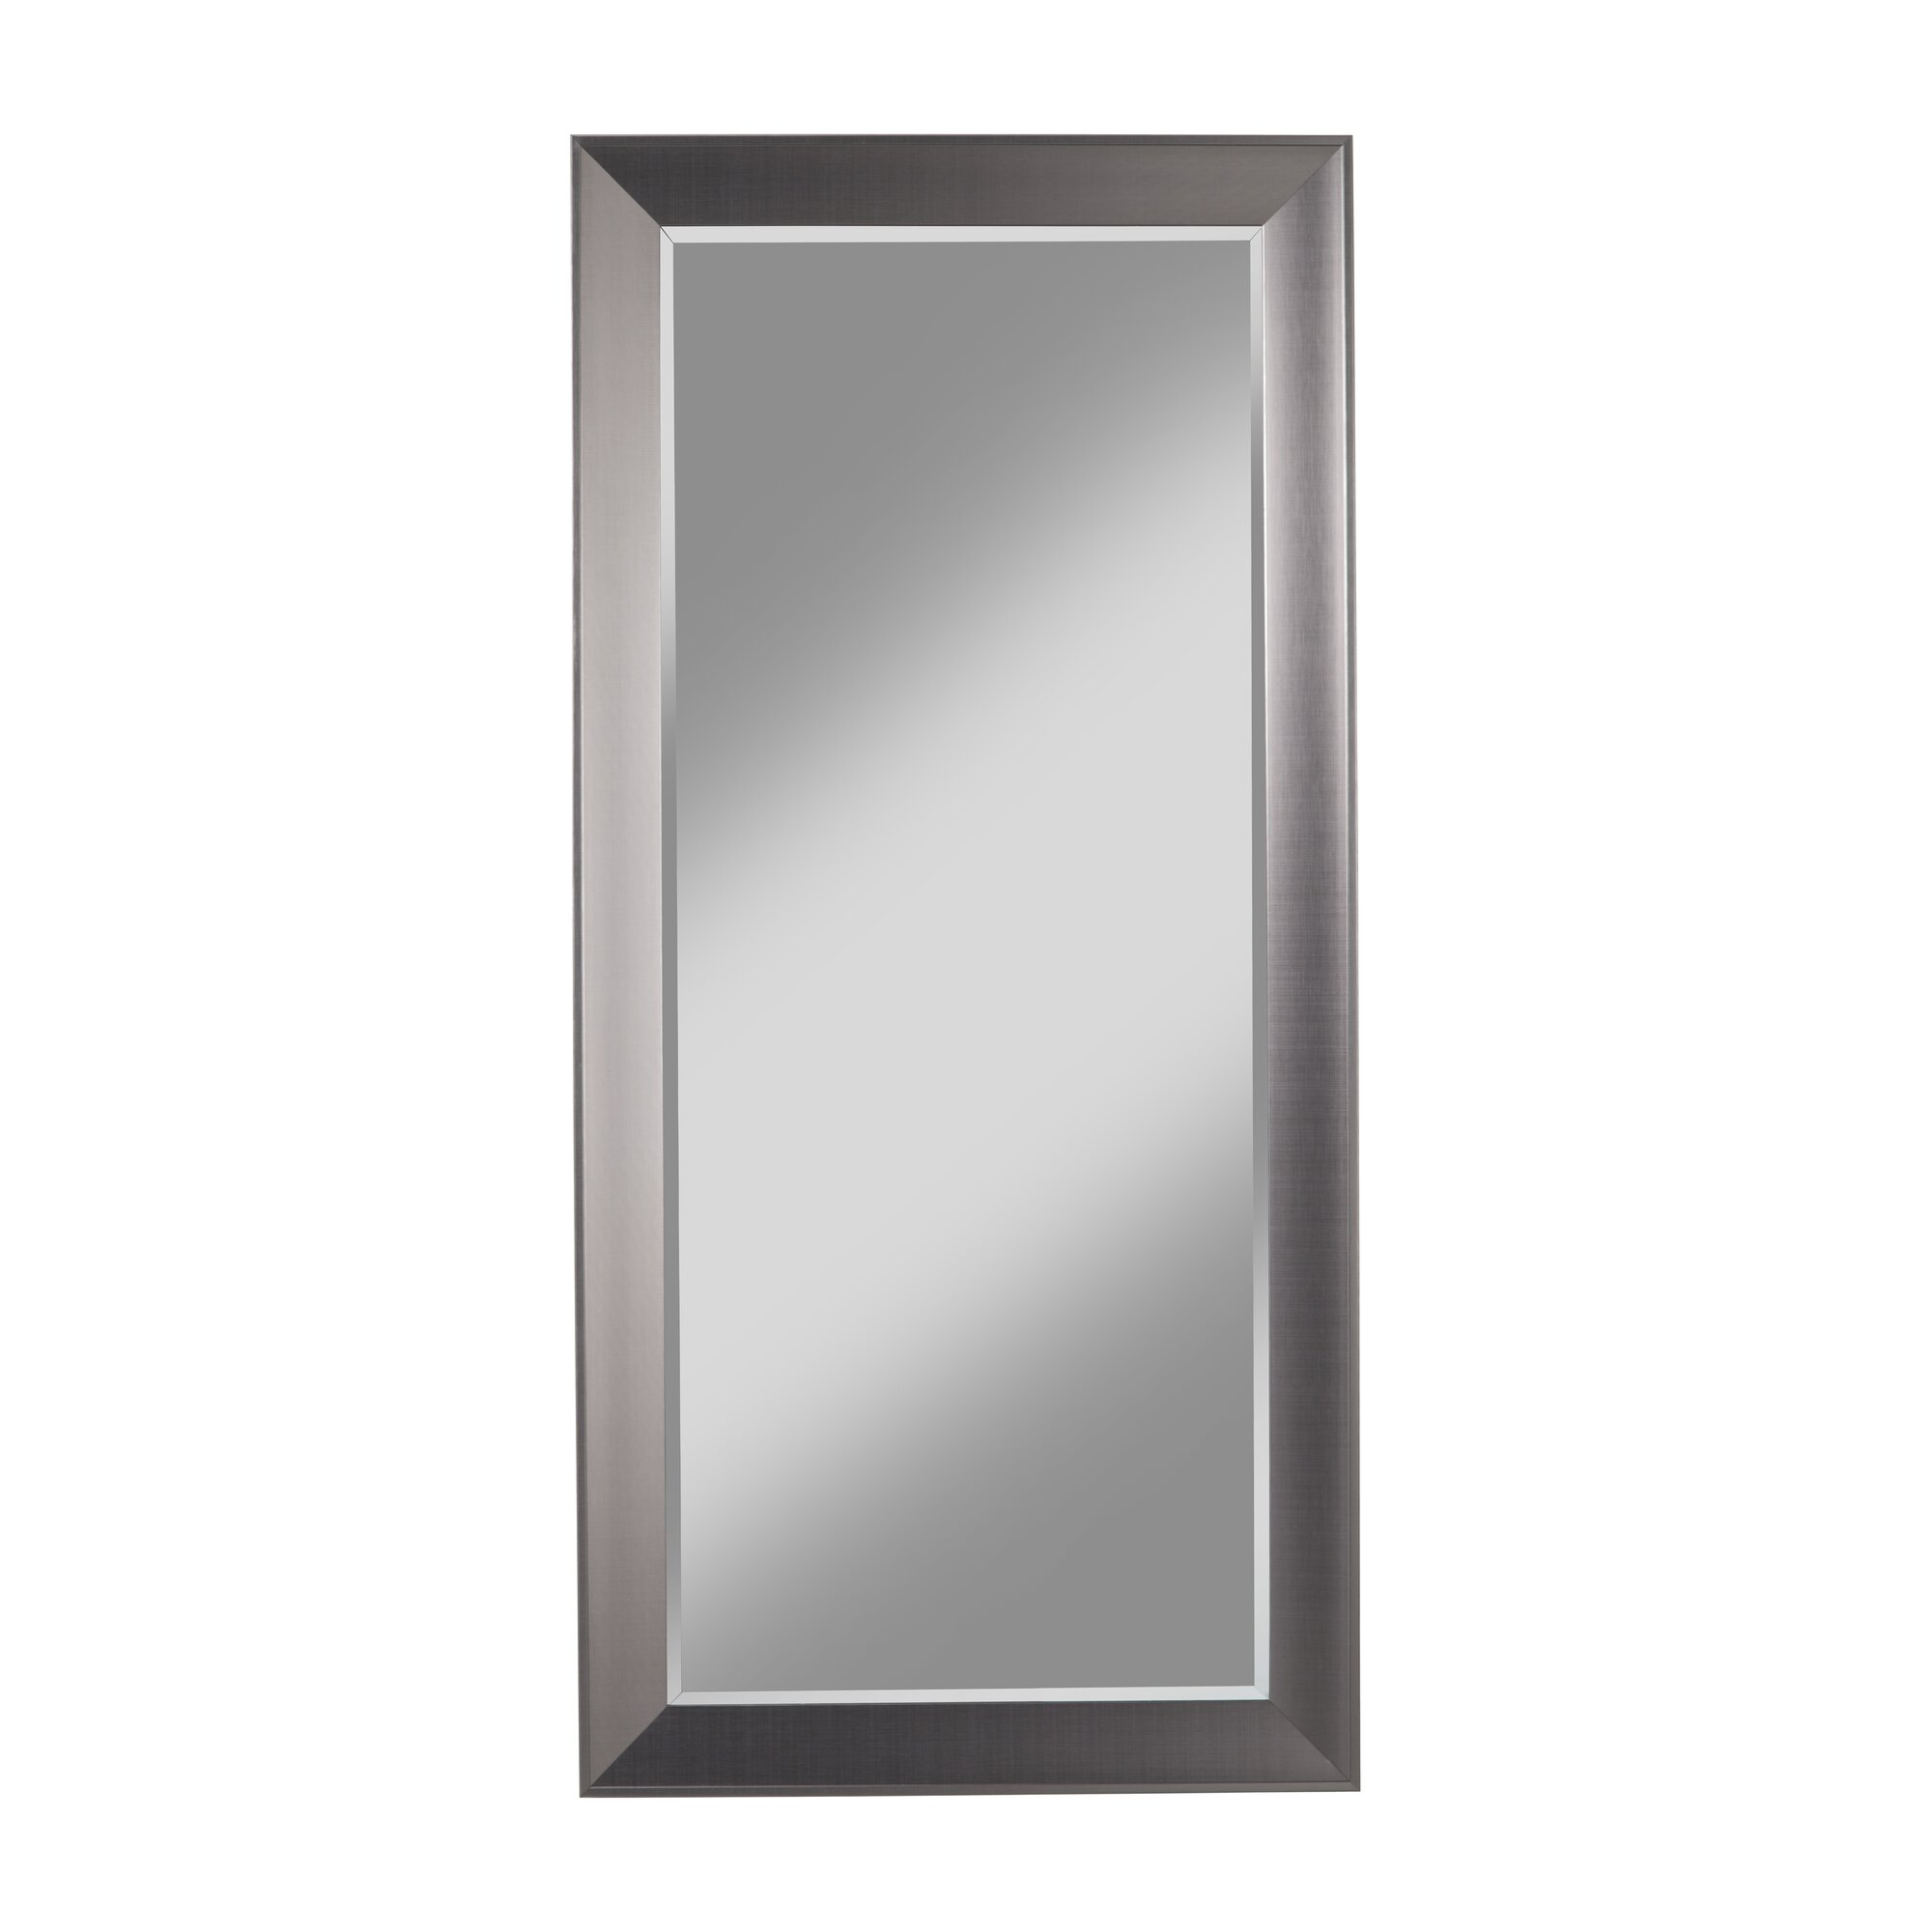 Rectangle contemporary full length mirror reviews Modern full length mirror